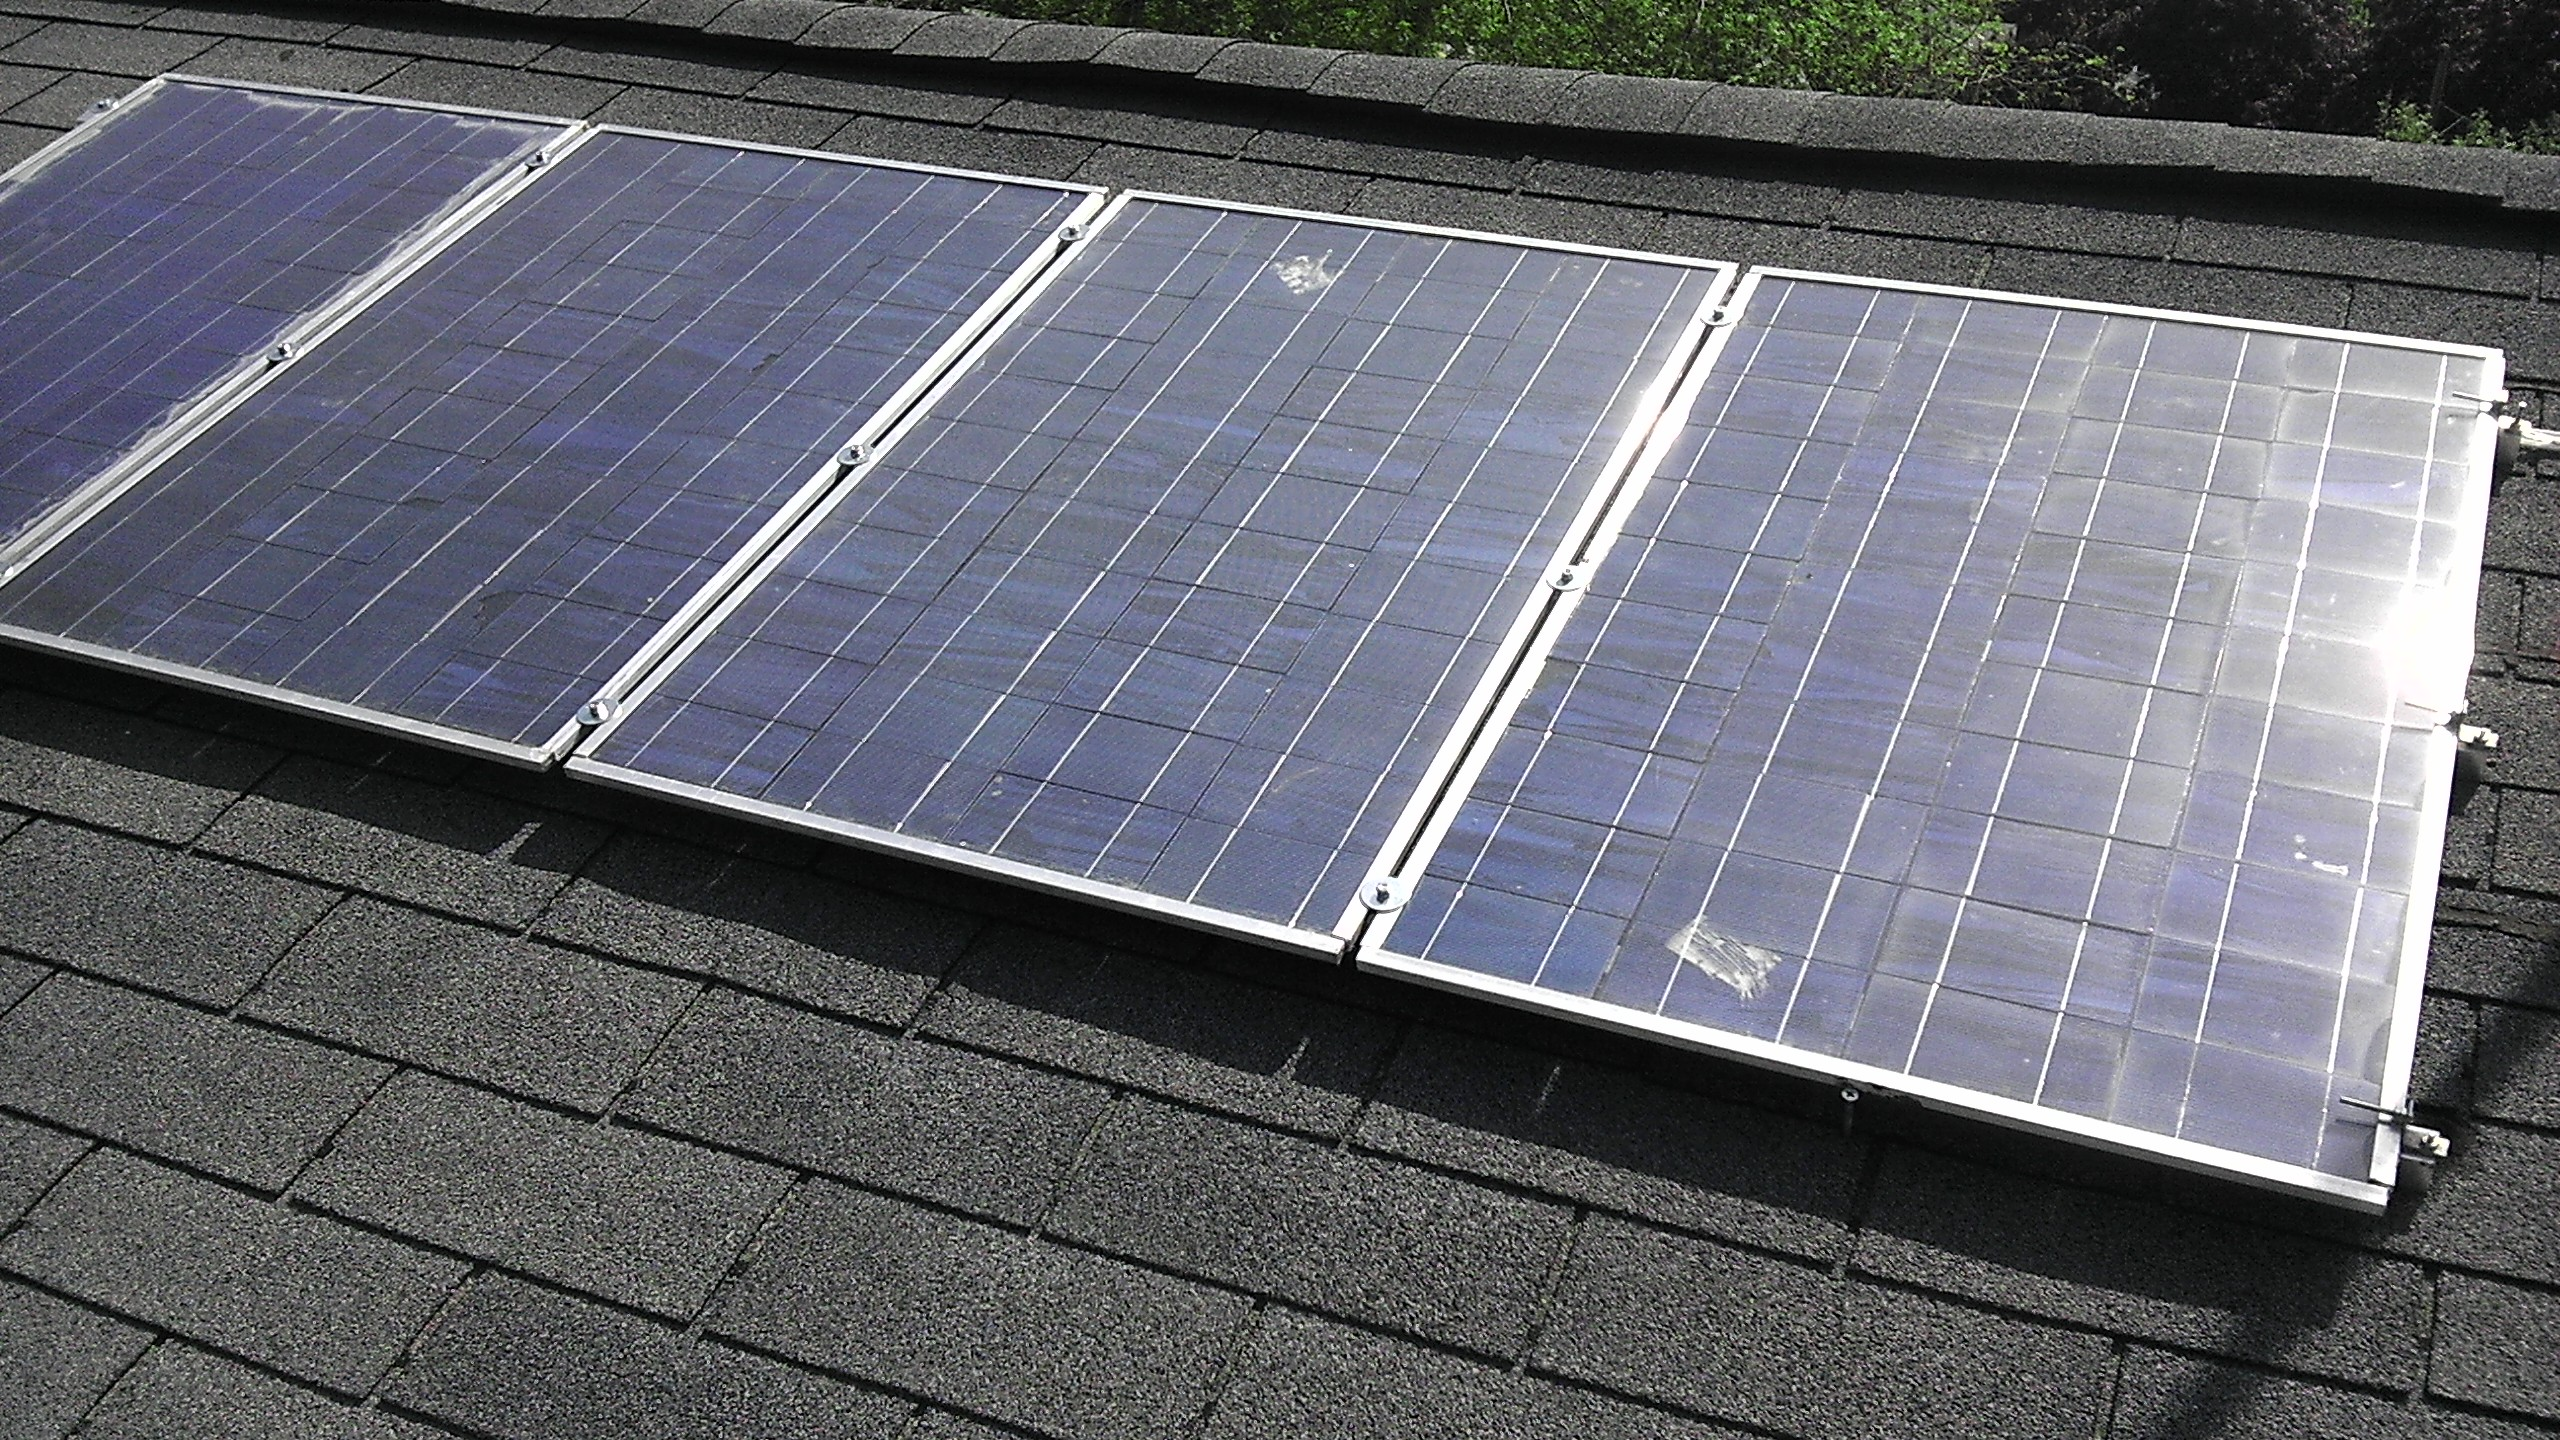 Home made panels(currently 12)  however in summer of 2014 planning to replace with some higher output pro built.  have panels on both sides of my roof due to not having a south facing roof. have a efficiency loss of 9%. compared to pointing them directly at the sun.  summer time output is 630watt, winter about half that.